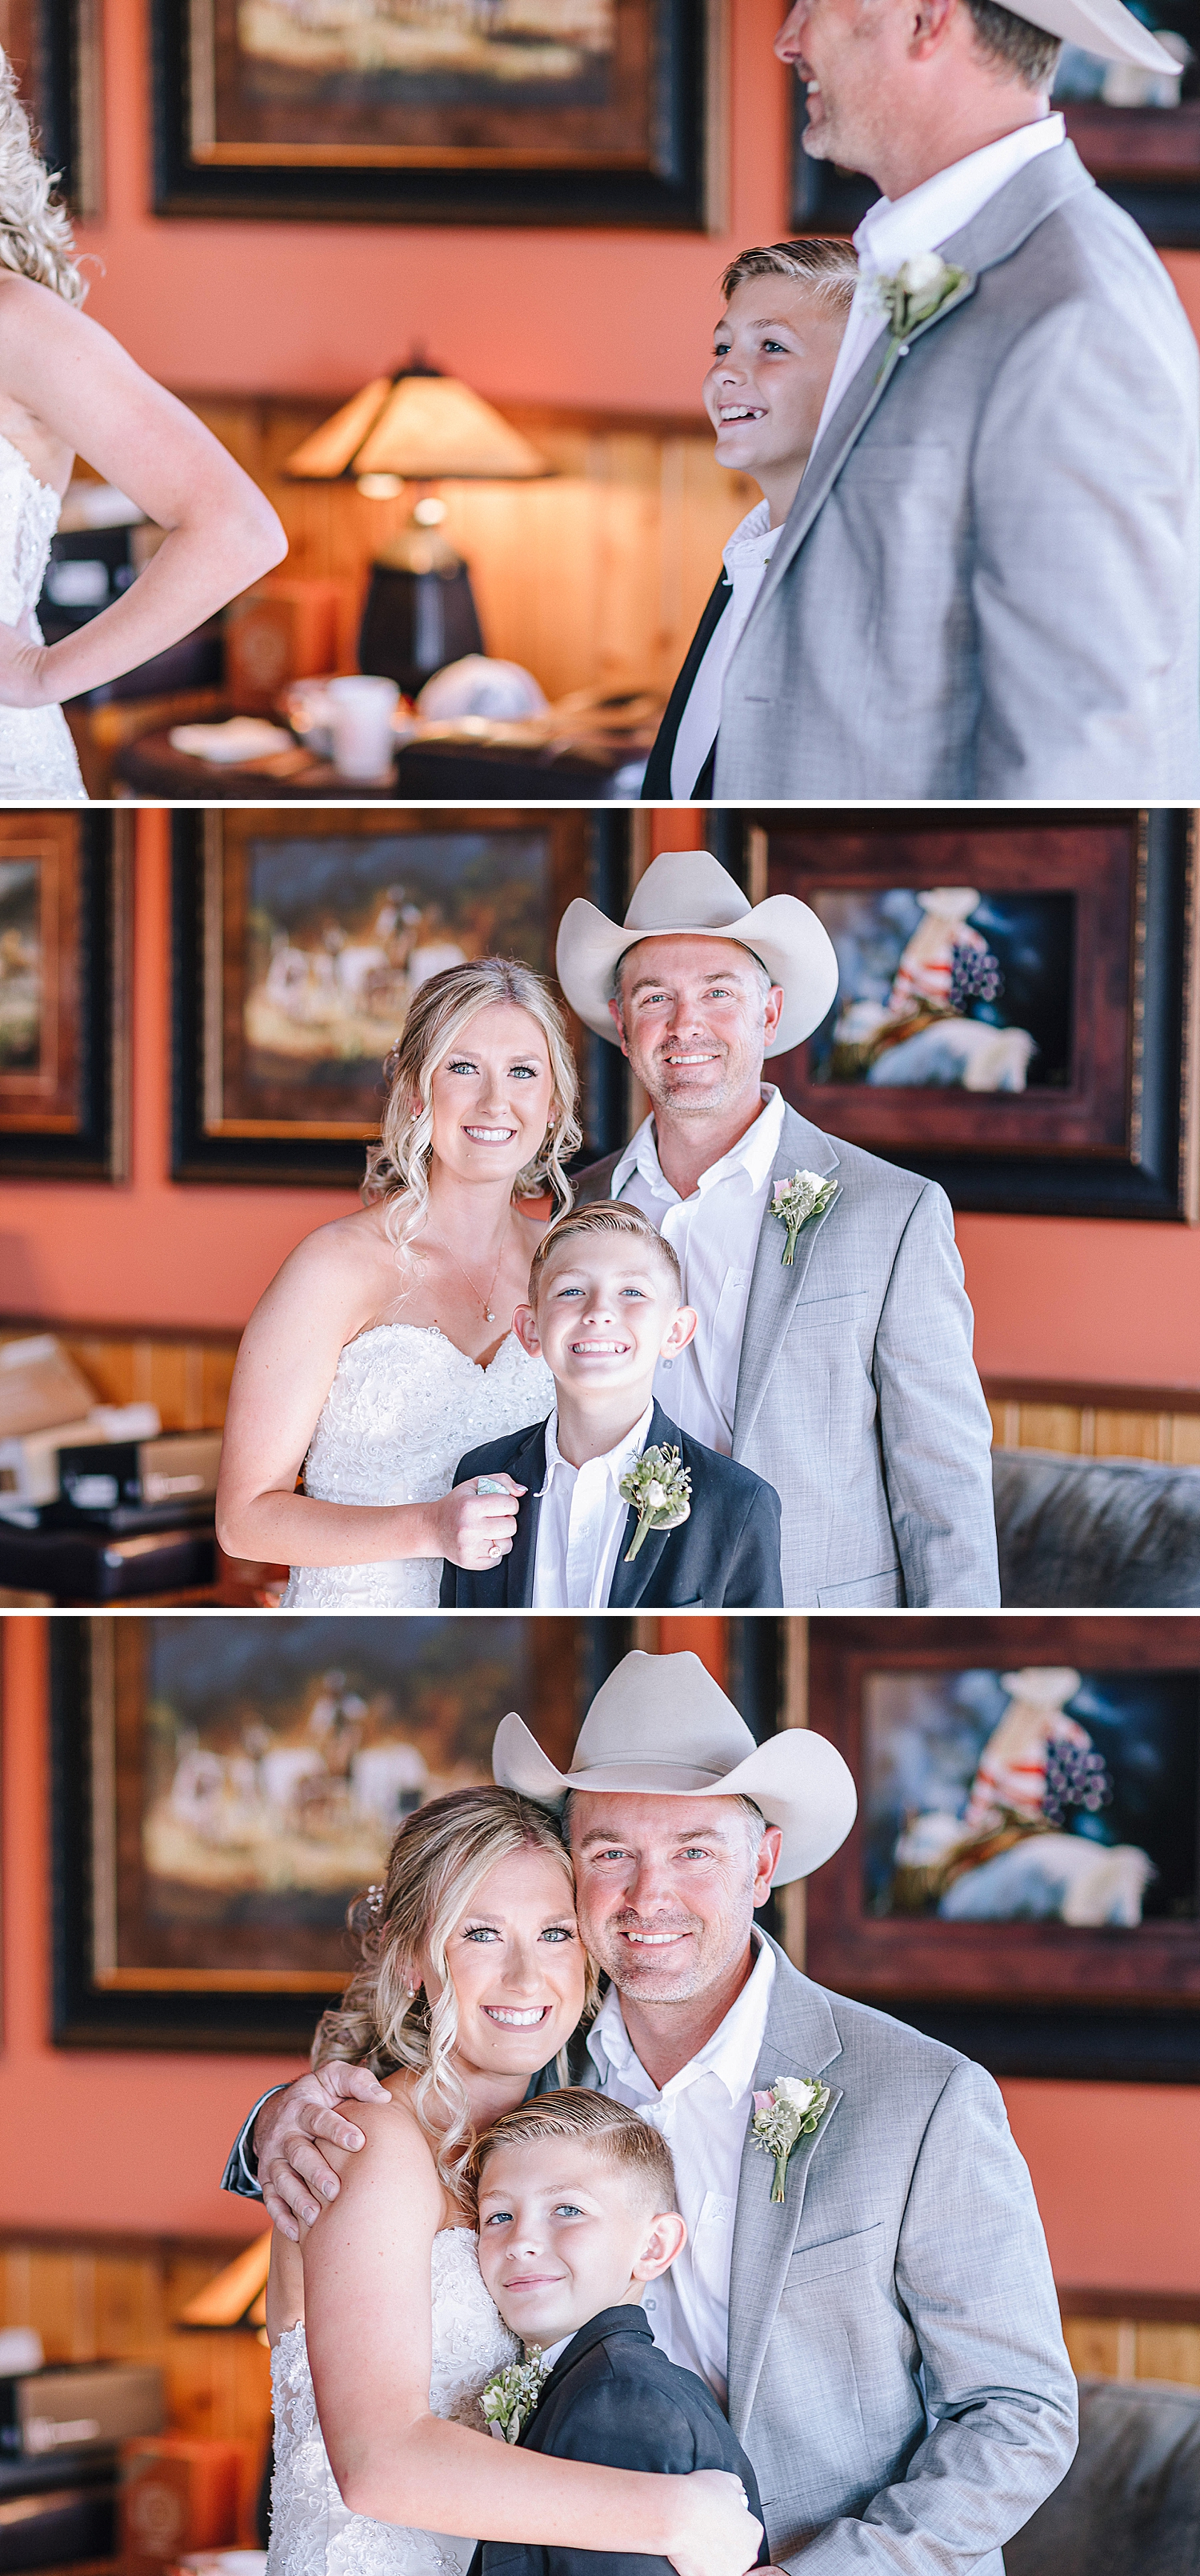 Rackler-Ranch-LaVernia-Texas-Wedding-Carly-Barton-Photography_0004.jpg